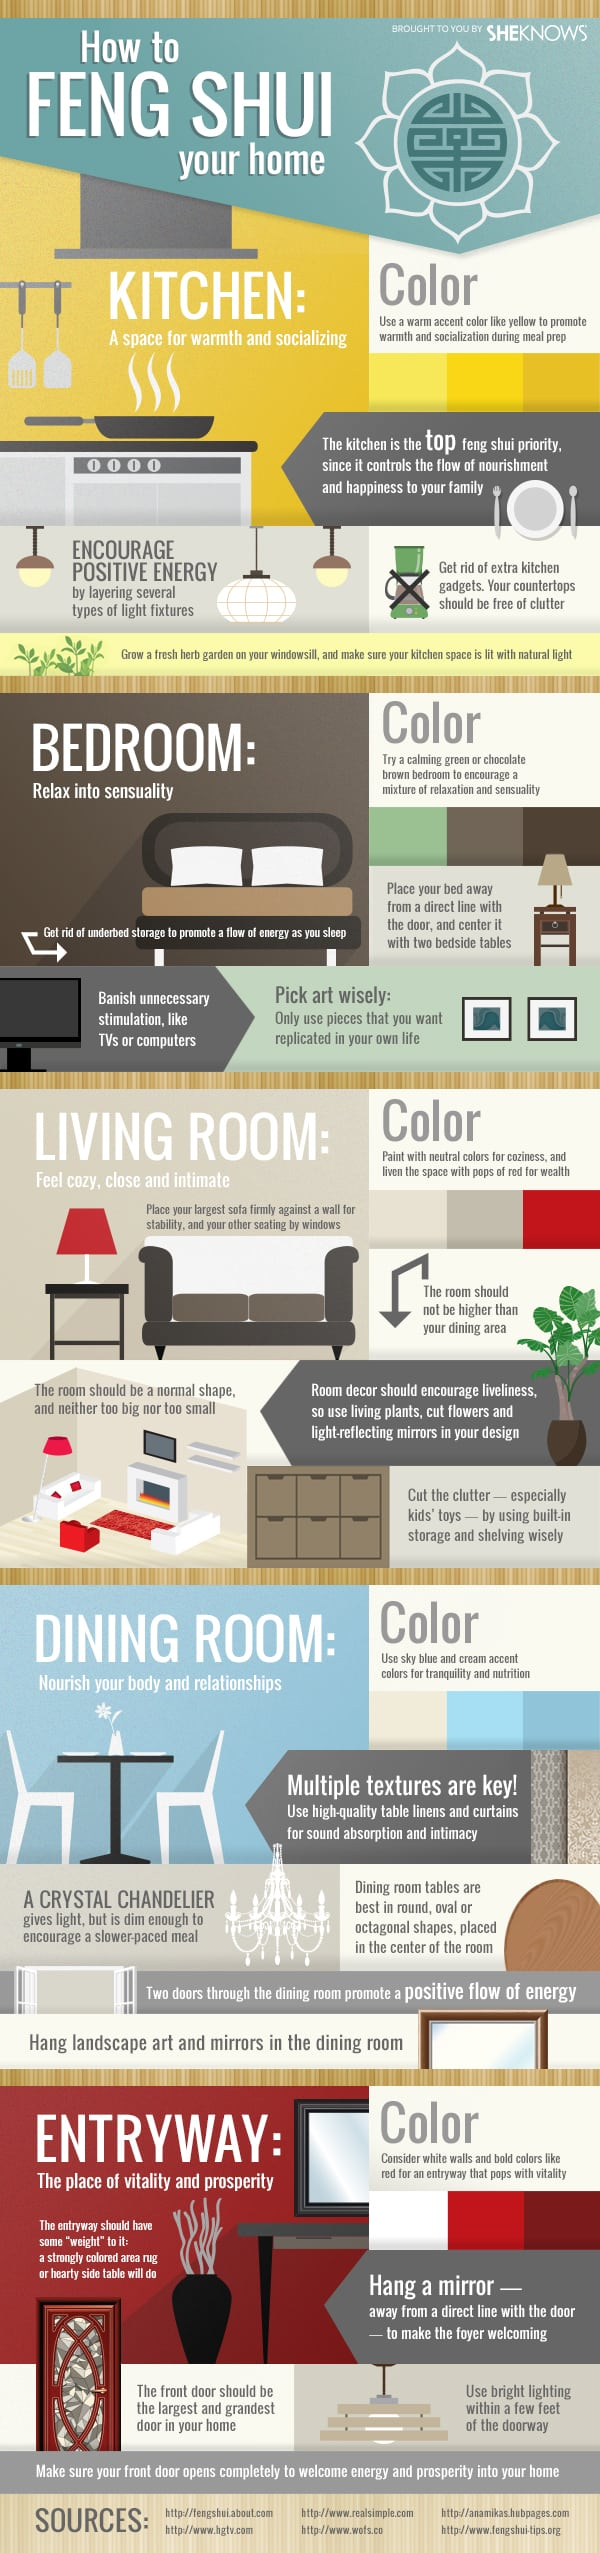 Tips on how to use feng shui in the home